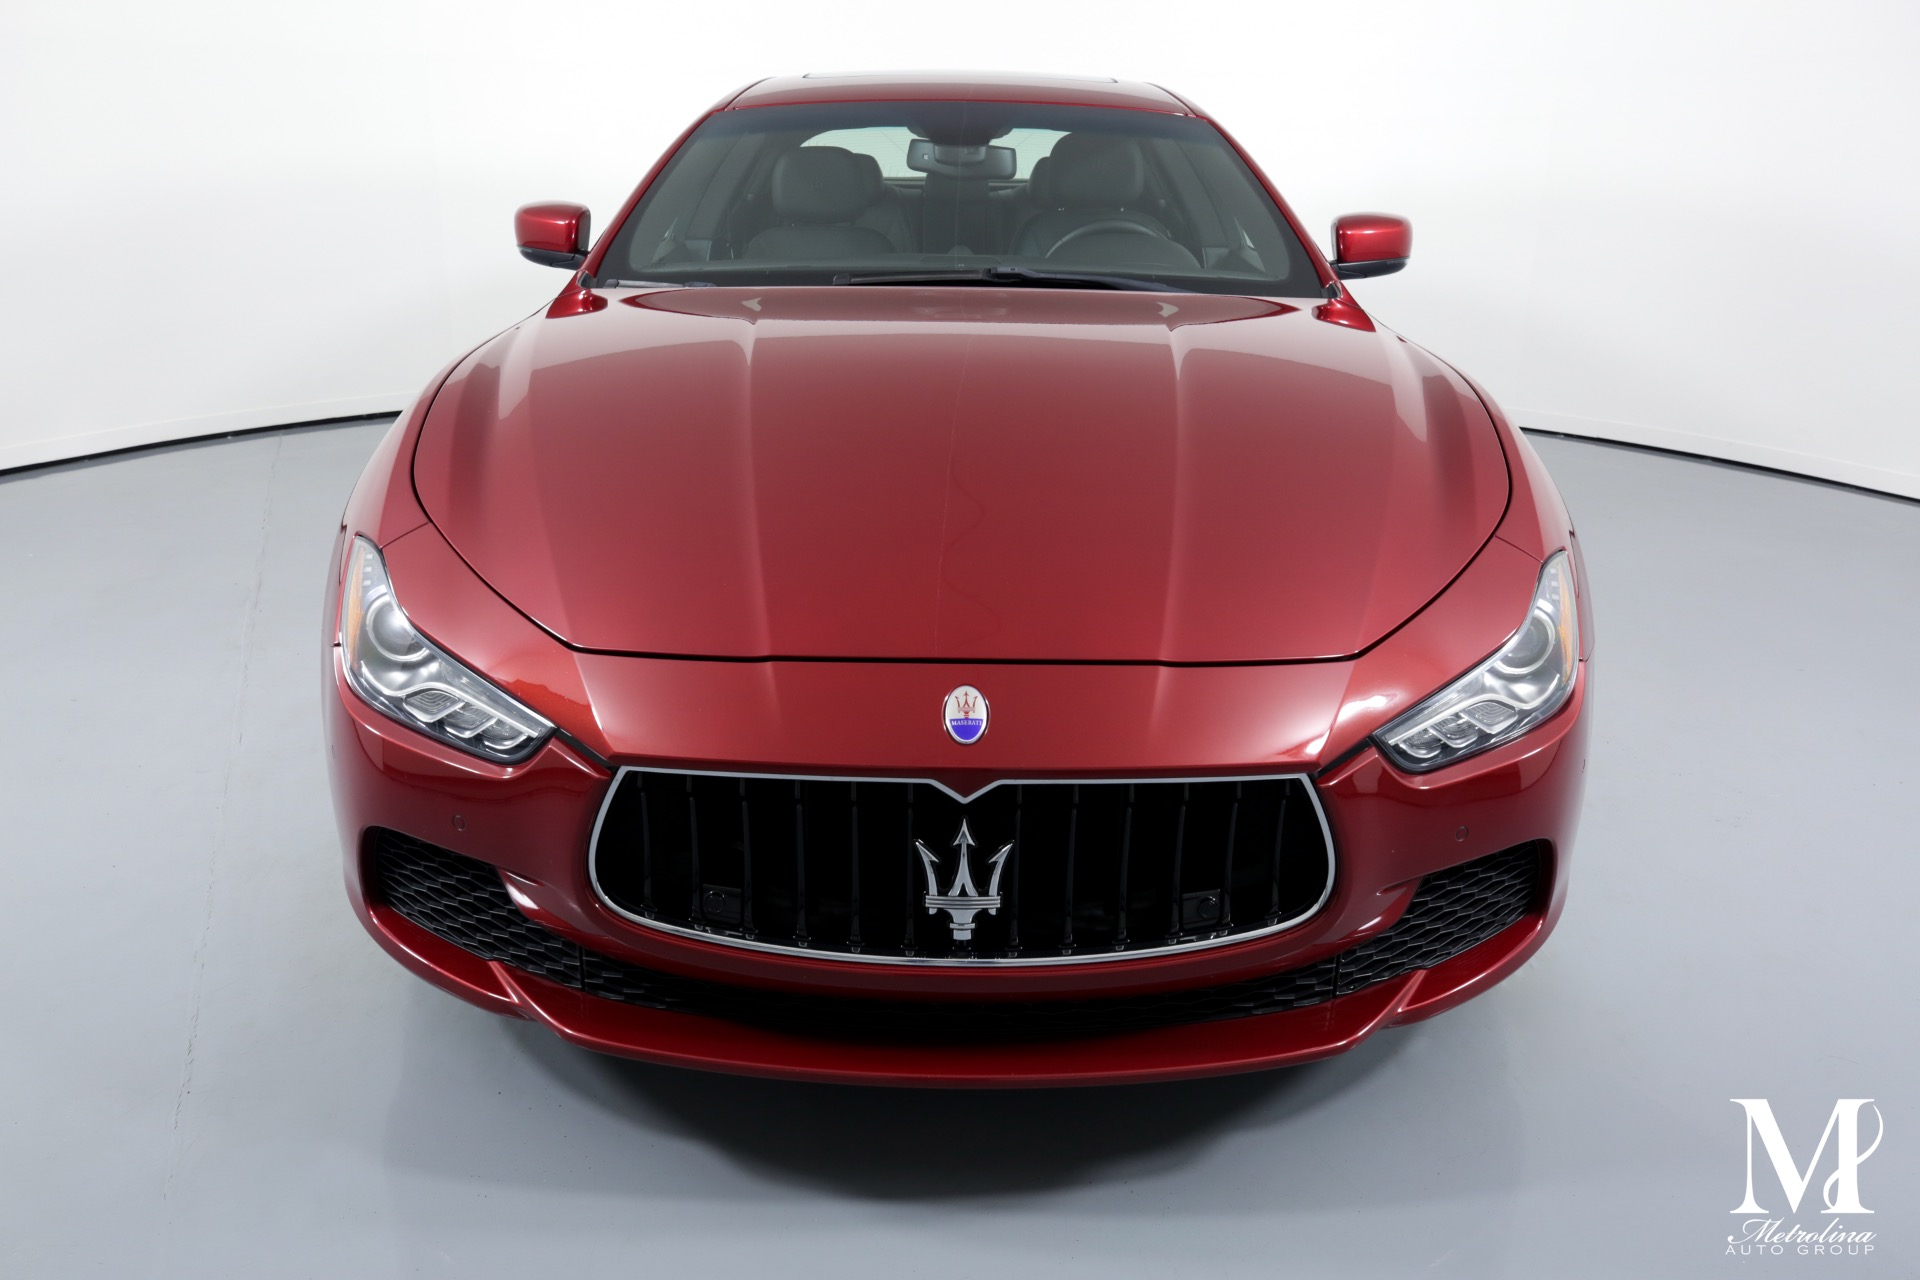 Used 2014 Maserati Ghibli S Q4 for sale Sold at Metrolina Auto Group in Charlotte NC 28217 - 3